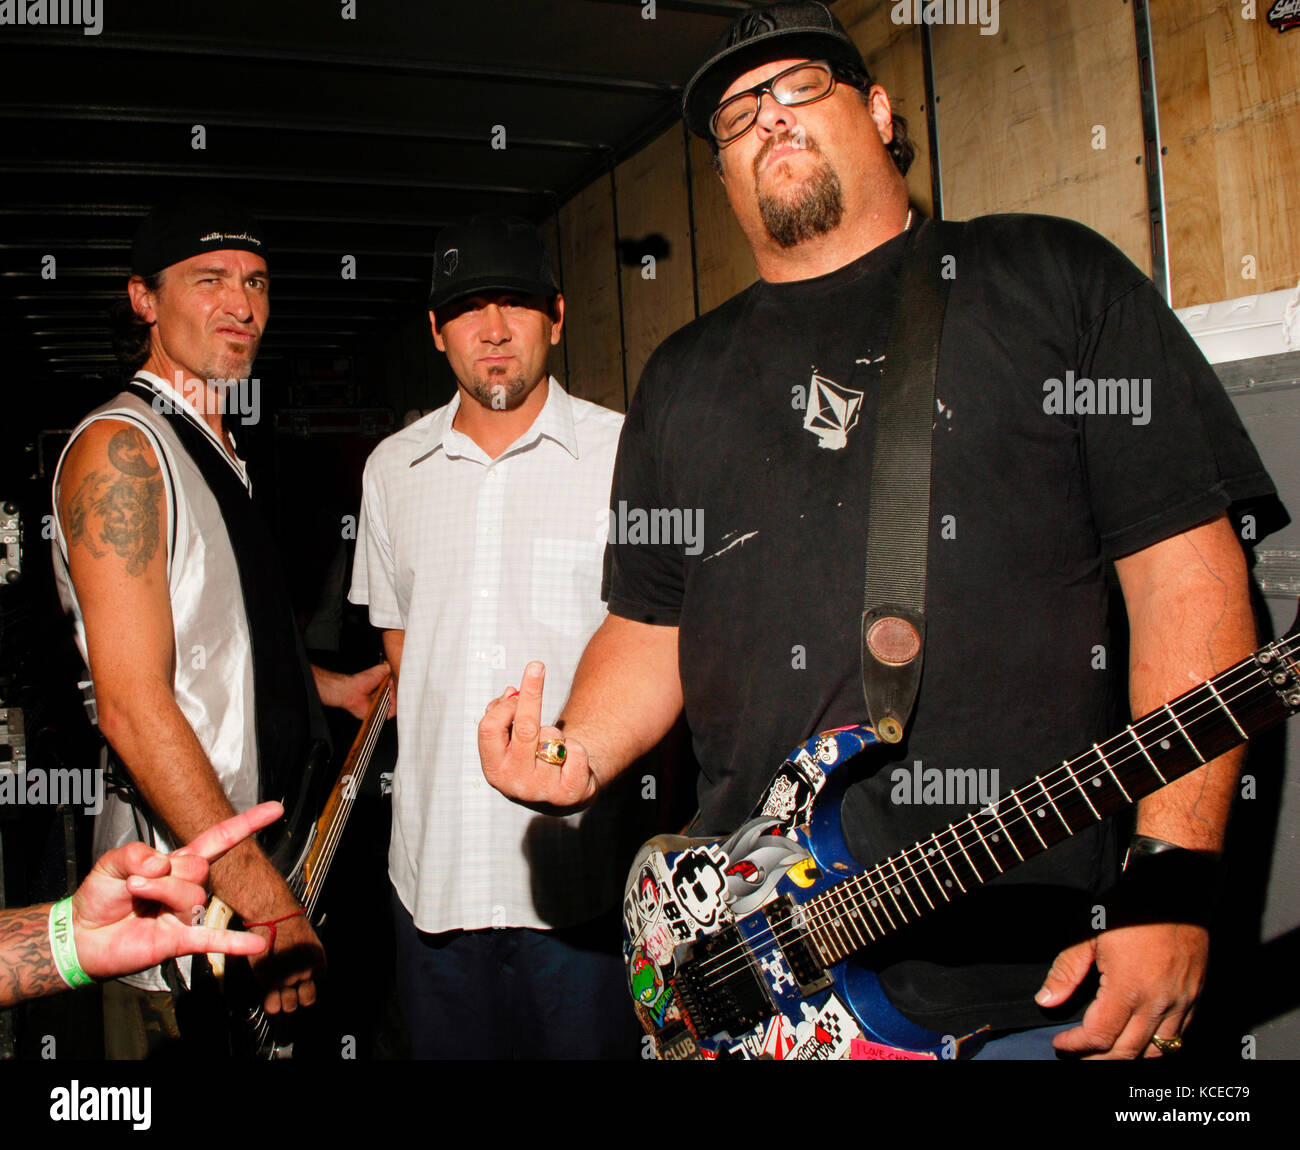 Randy Bradbury, Jim Lindberg, Fletcher Dragge of Pennywise portrait at the 2007 Vans Warped Tour at the Coors ampitheatre - Stock Image